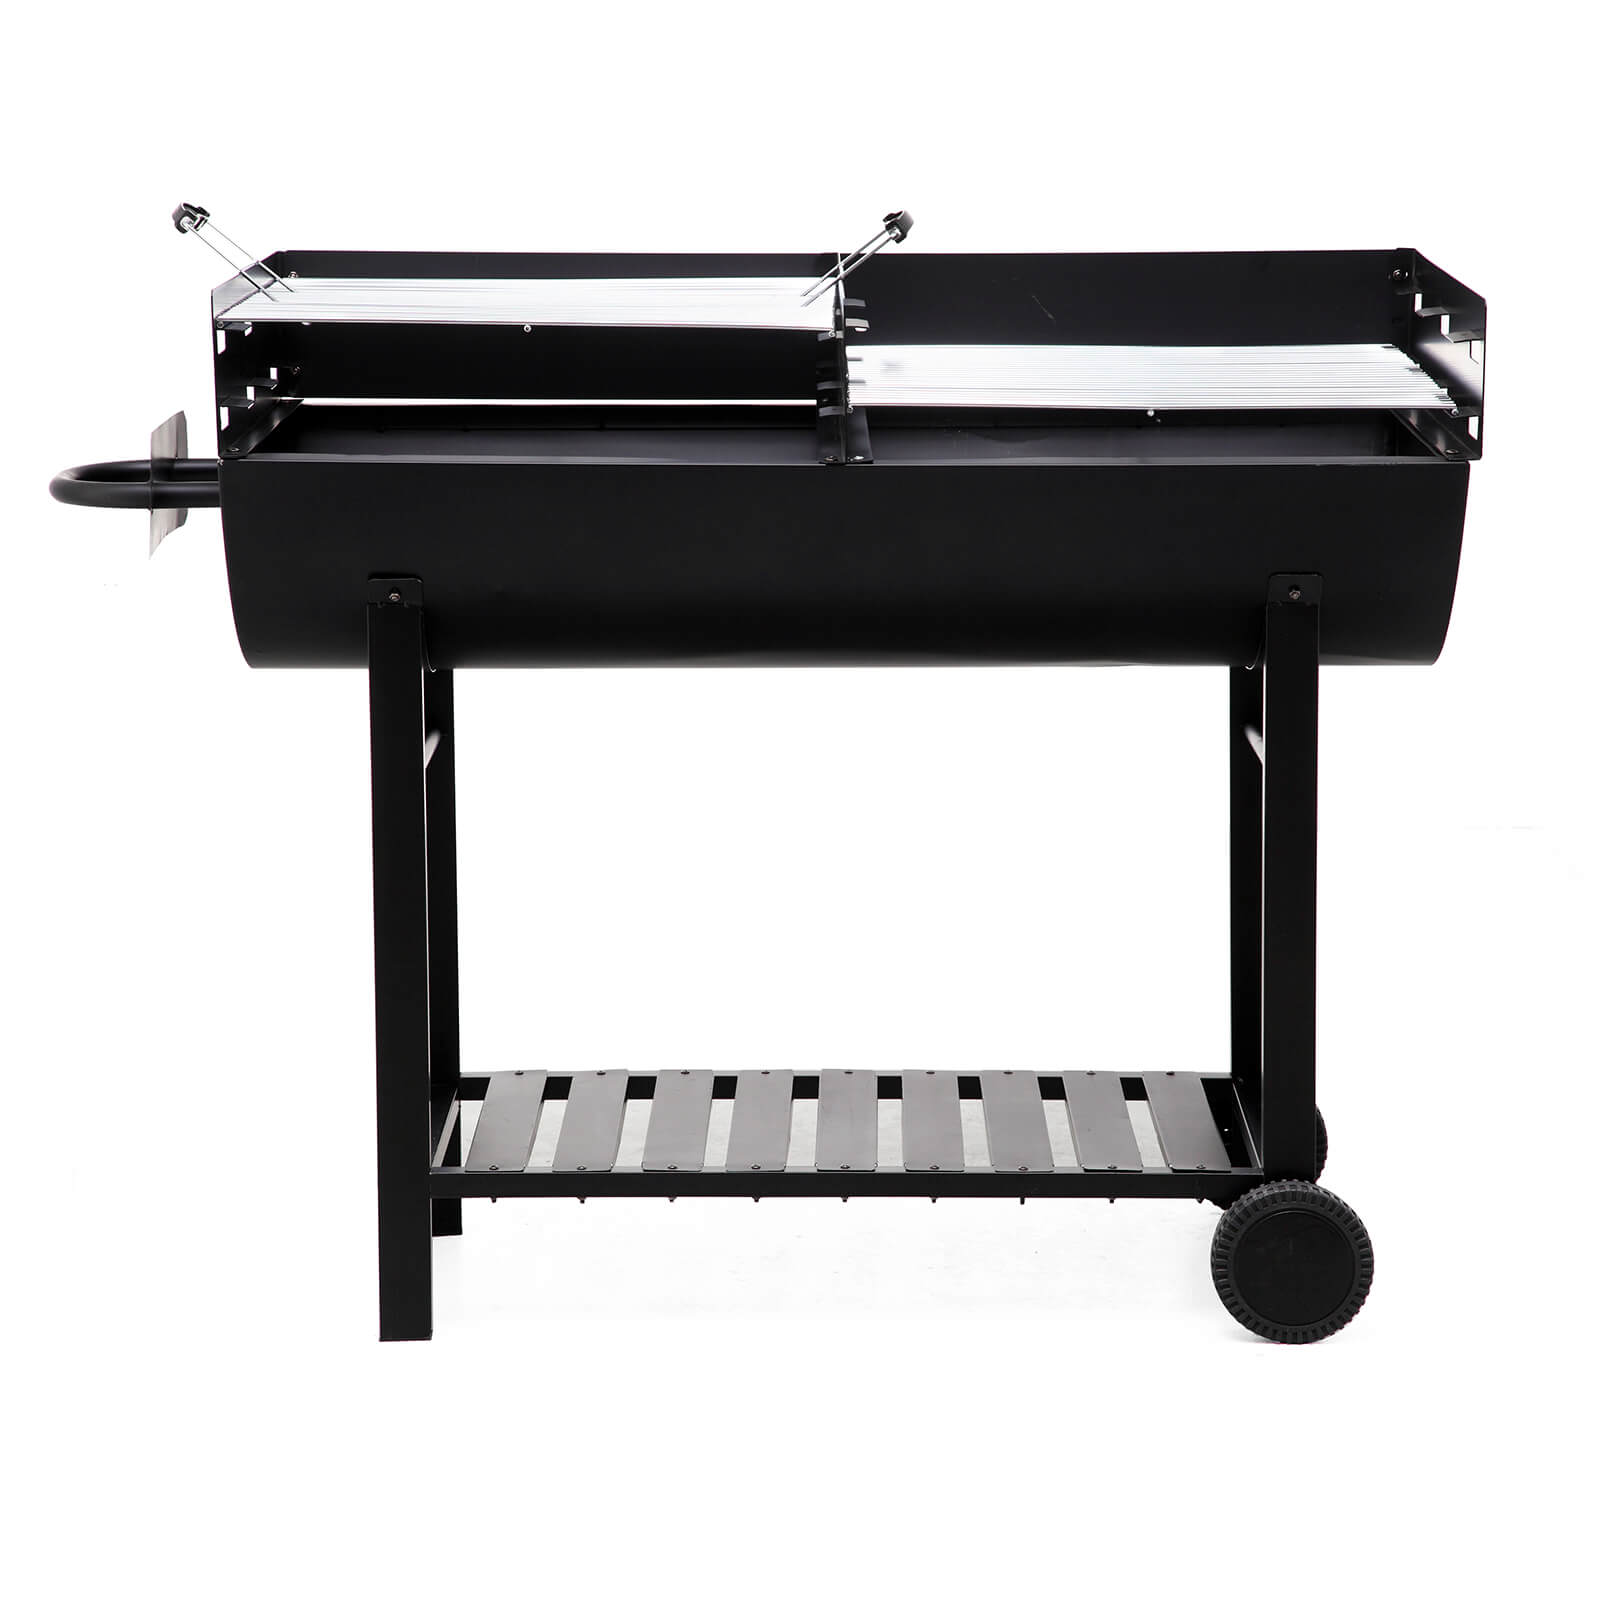 Tepro Dallas Barrel BBQ Grill - Black